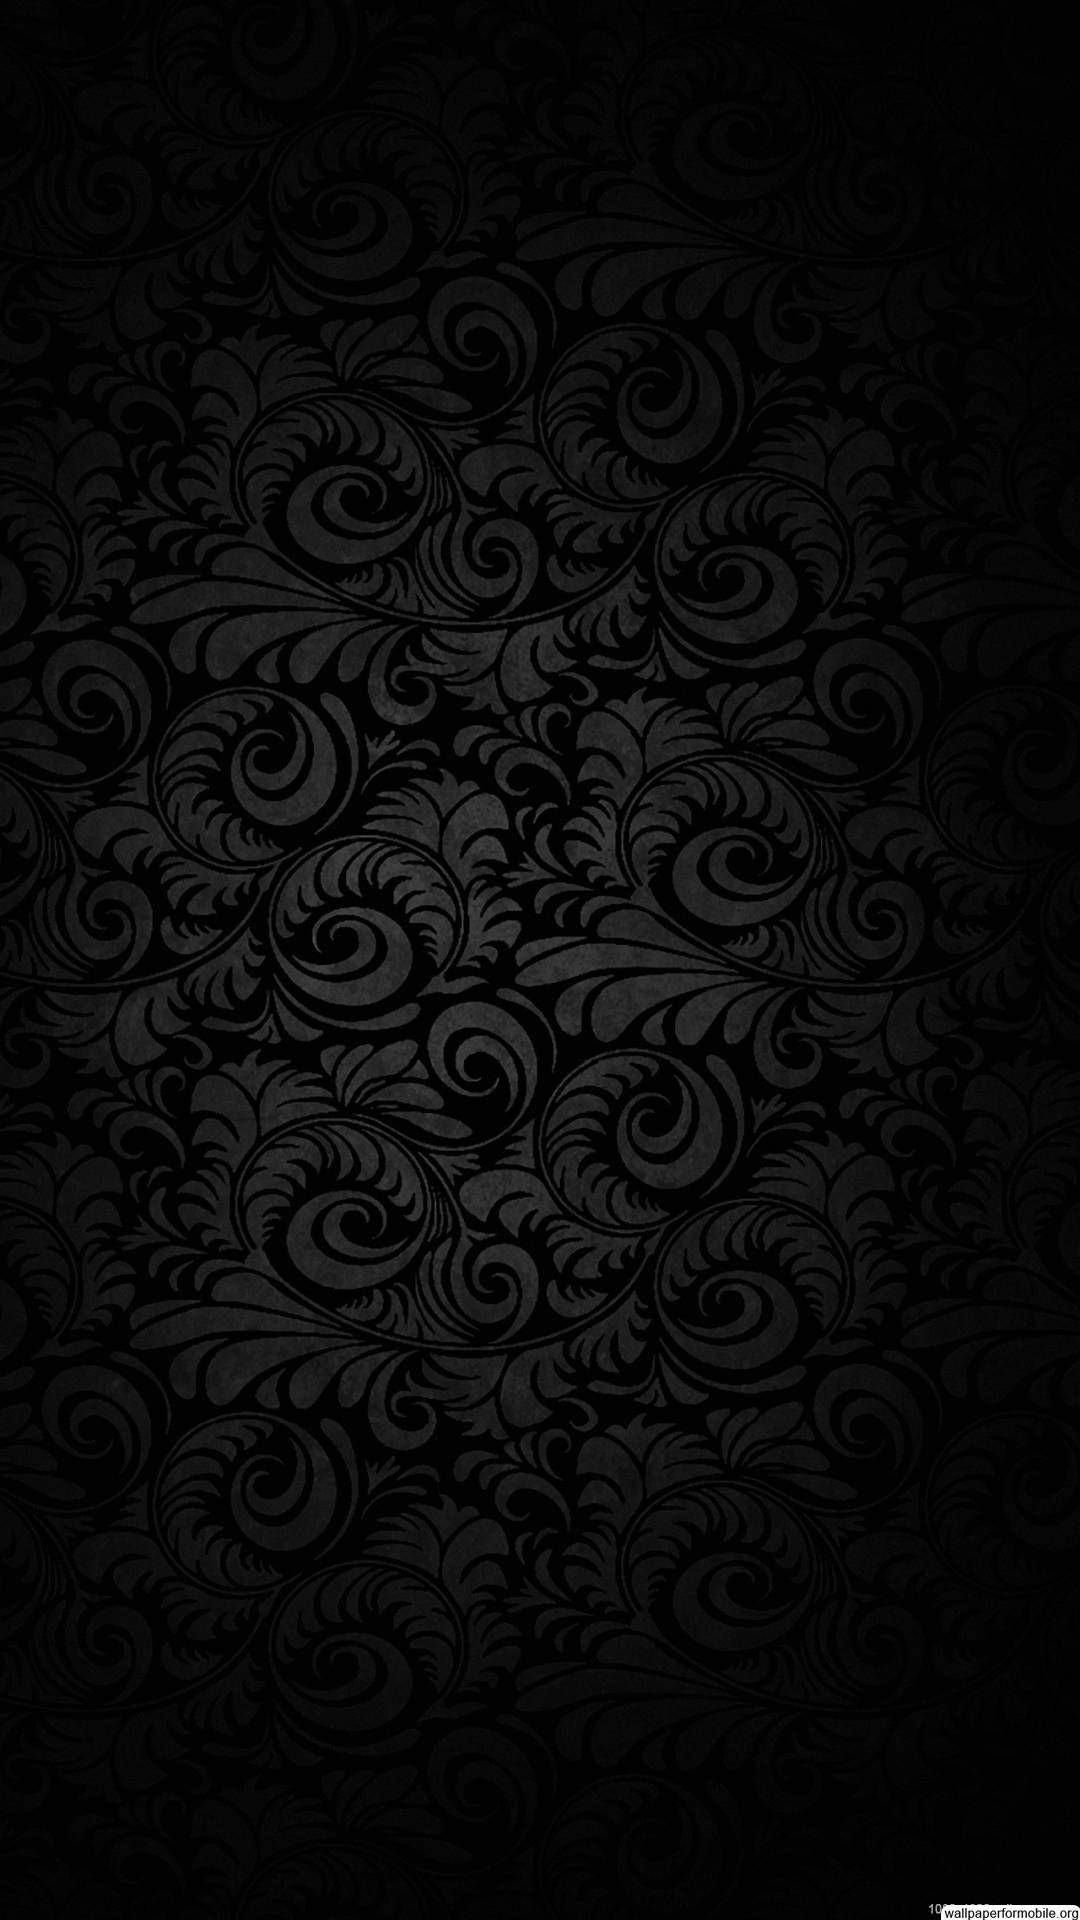 Android Black Wallpapers For Mobile